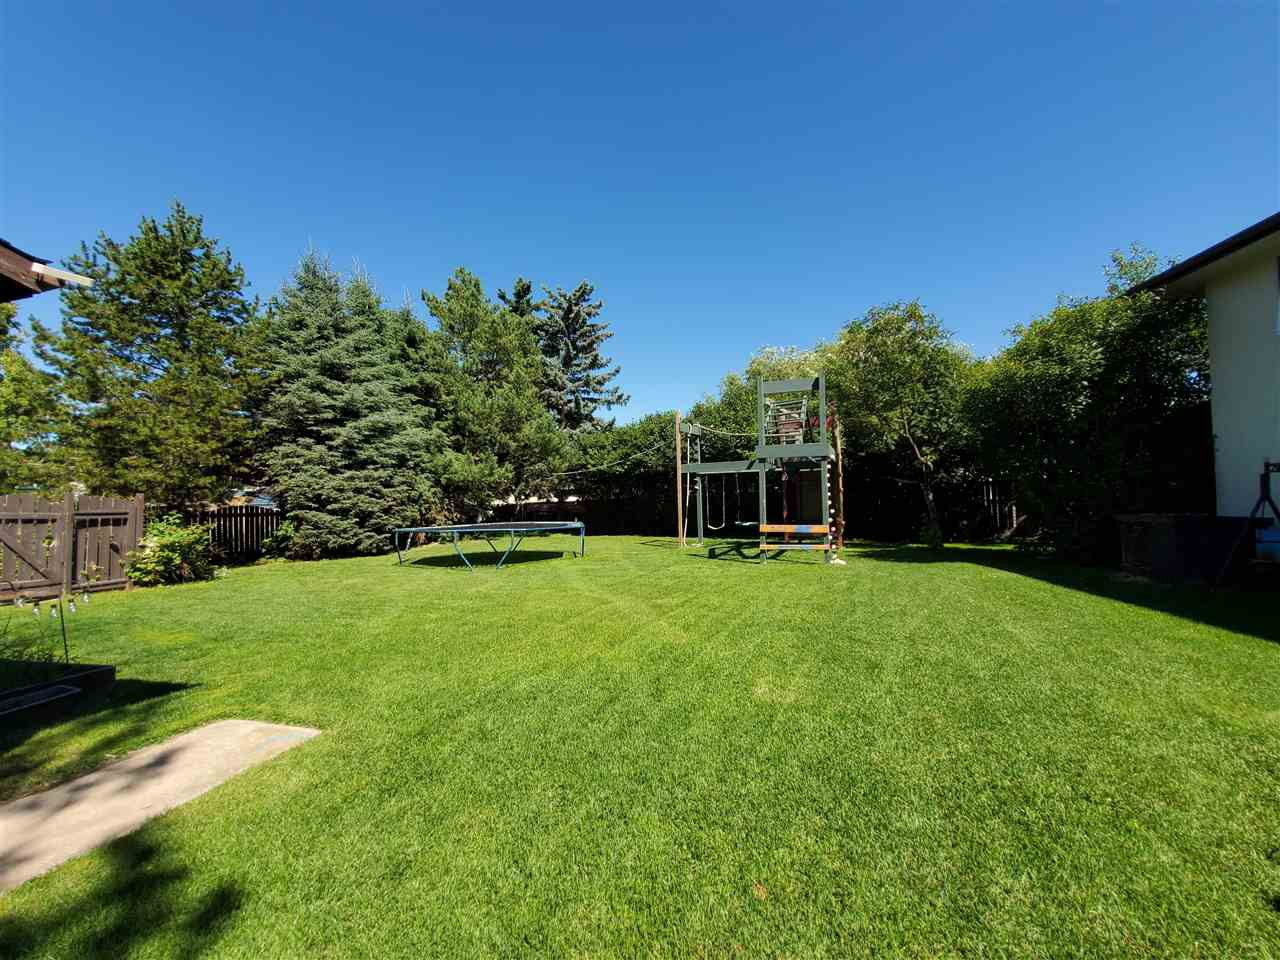 Photo 32: Photos: 125 Spruce Crescent: Wetaskiwin House for sale : MLS®# E4207728